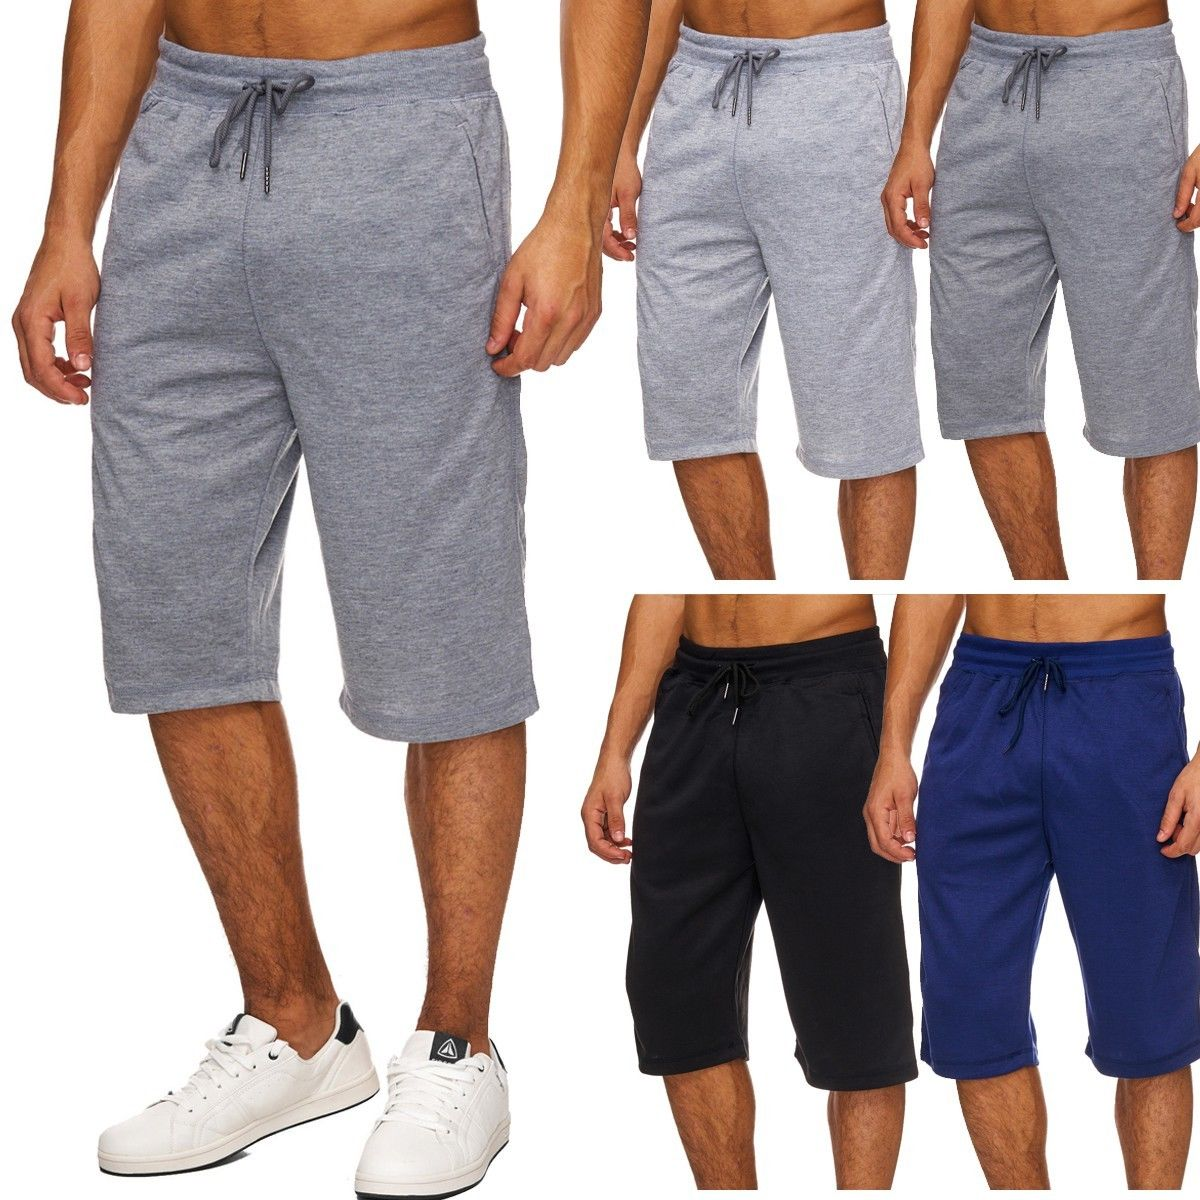 Herren Sportshorts Jogginghose Sweatshorts Fitness Sport Home 3/4 Basic Plus